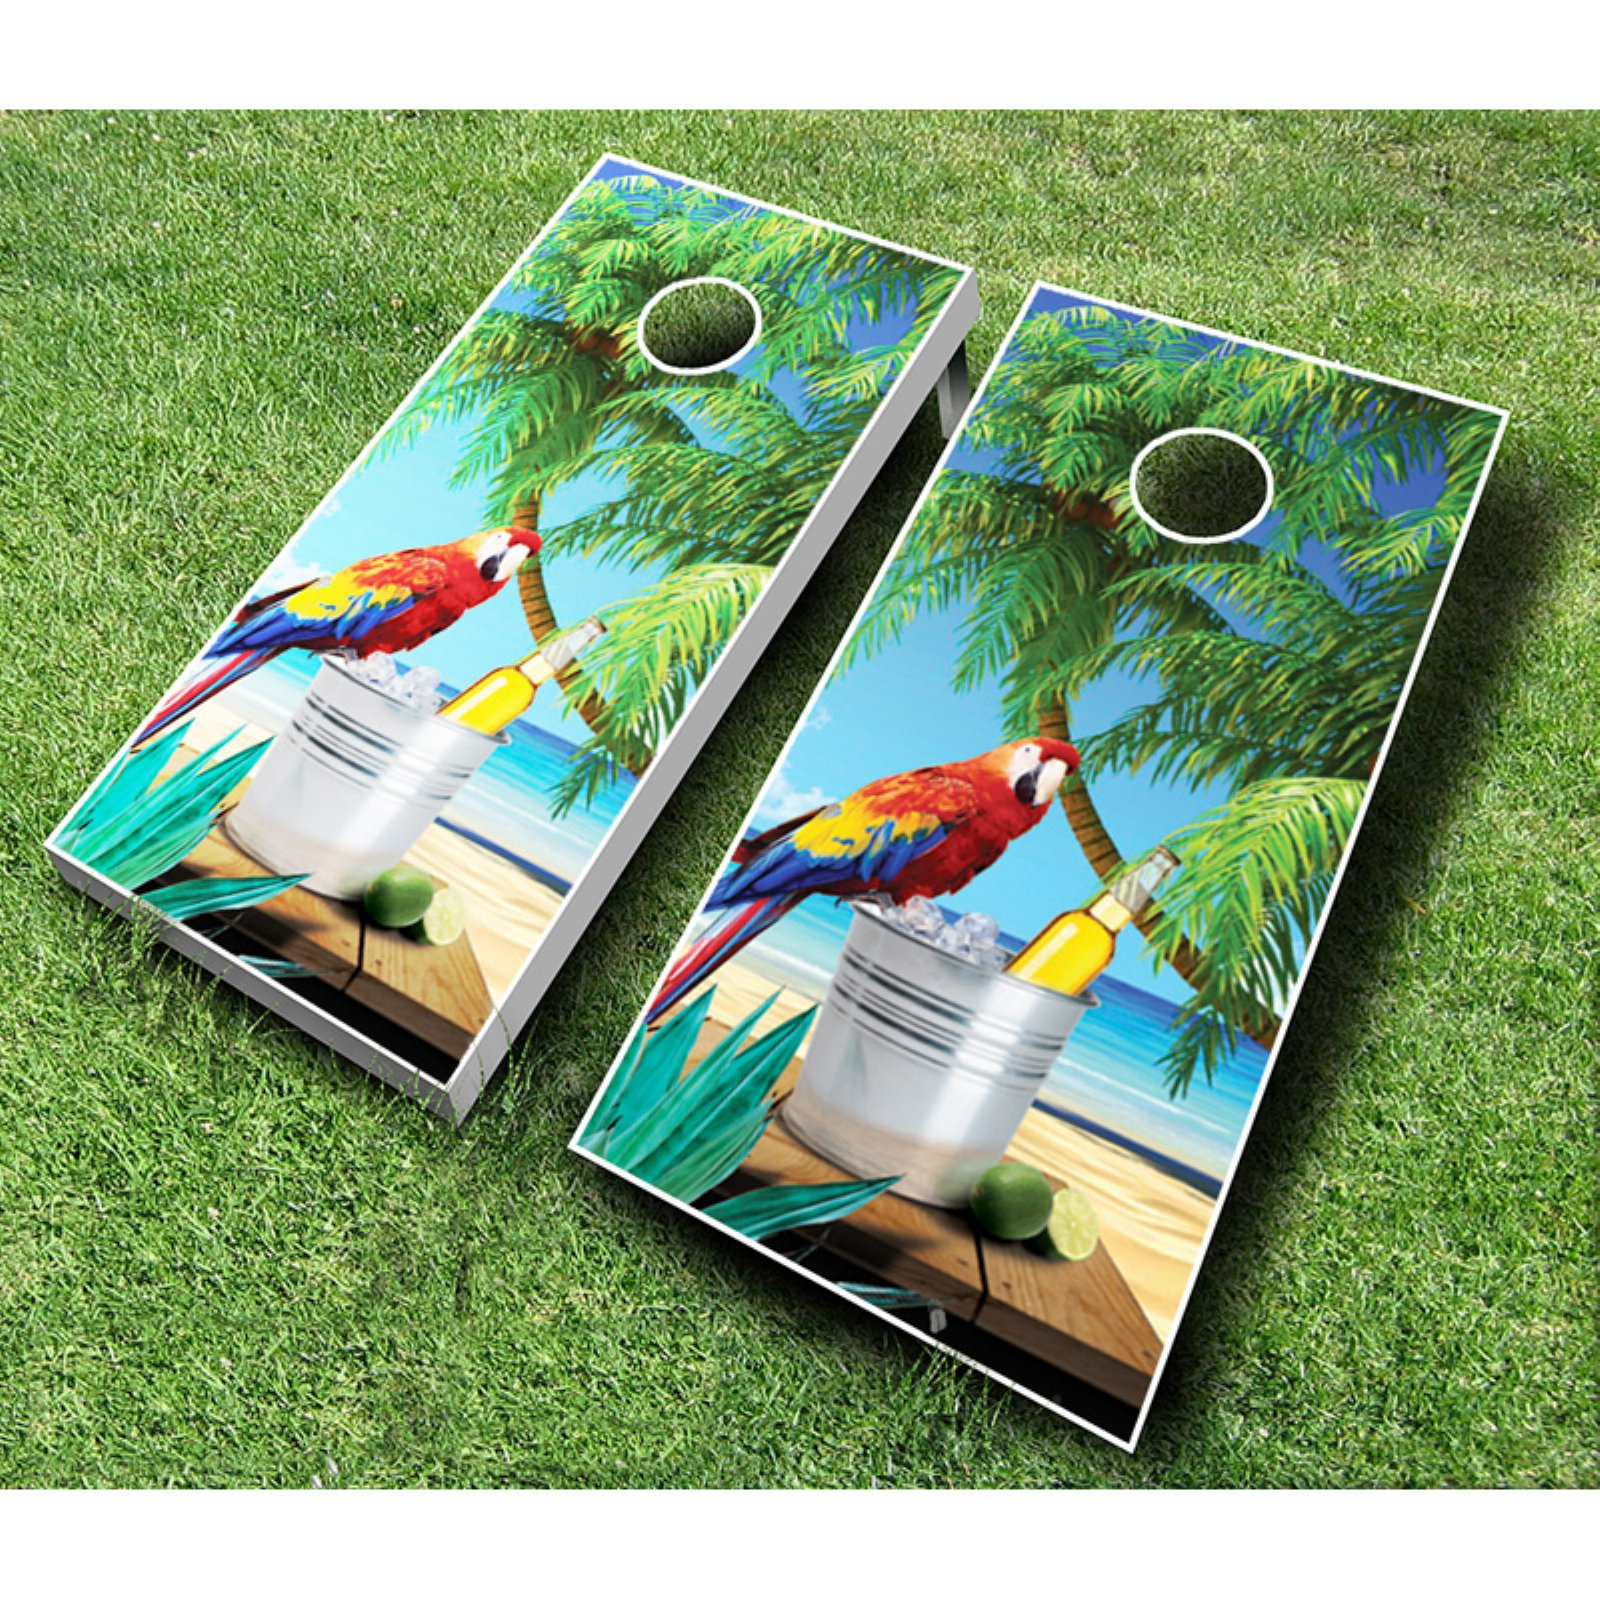 Click here to buy Parrot Cornhole Set with Bags by AJJ Cornhole.